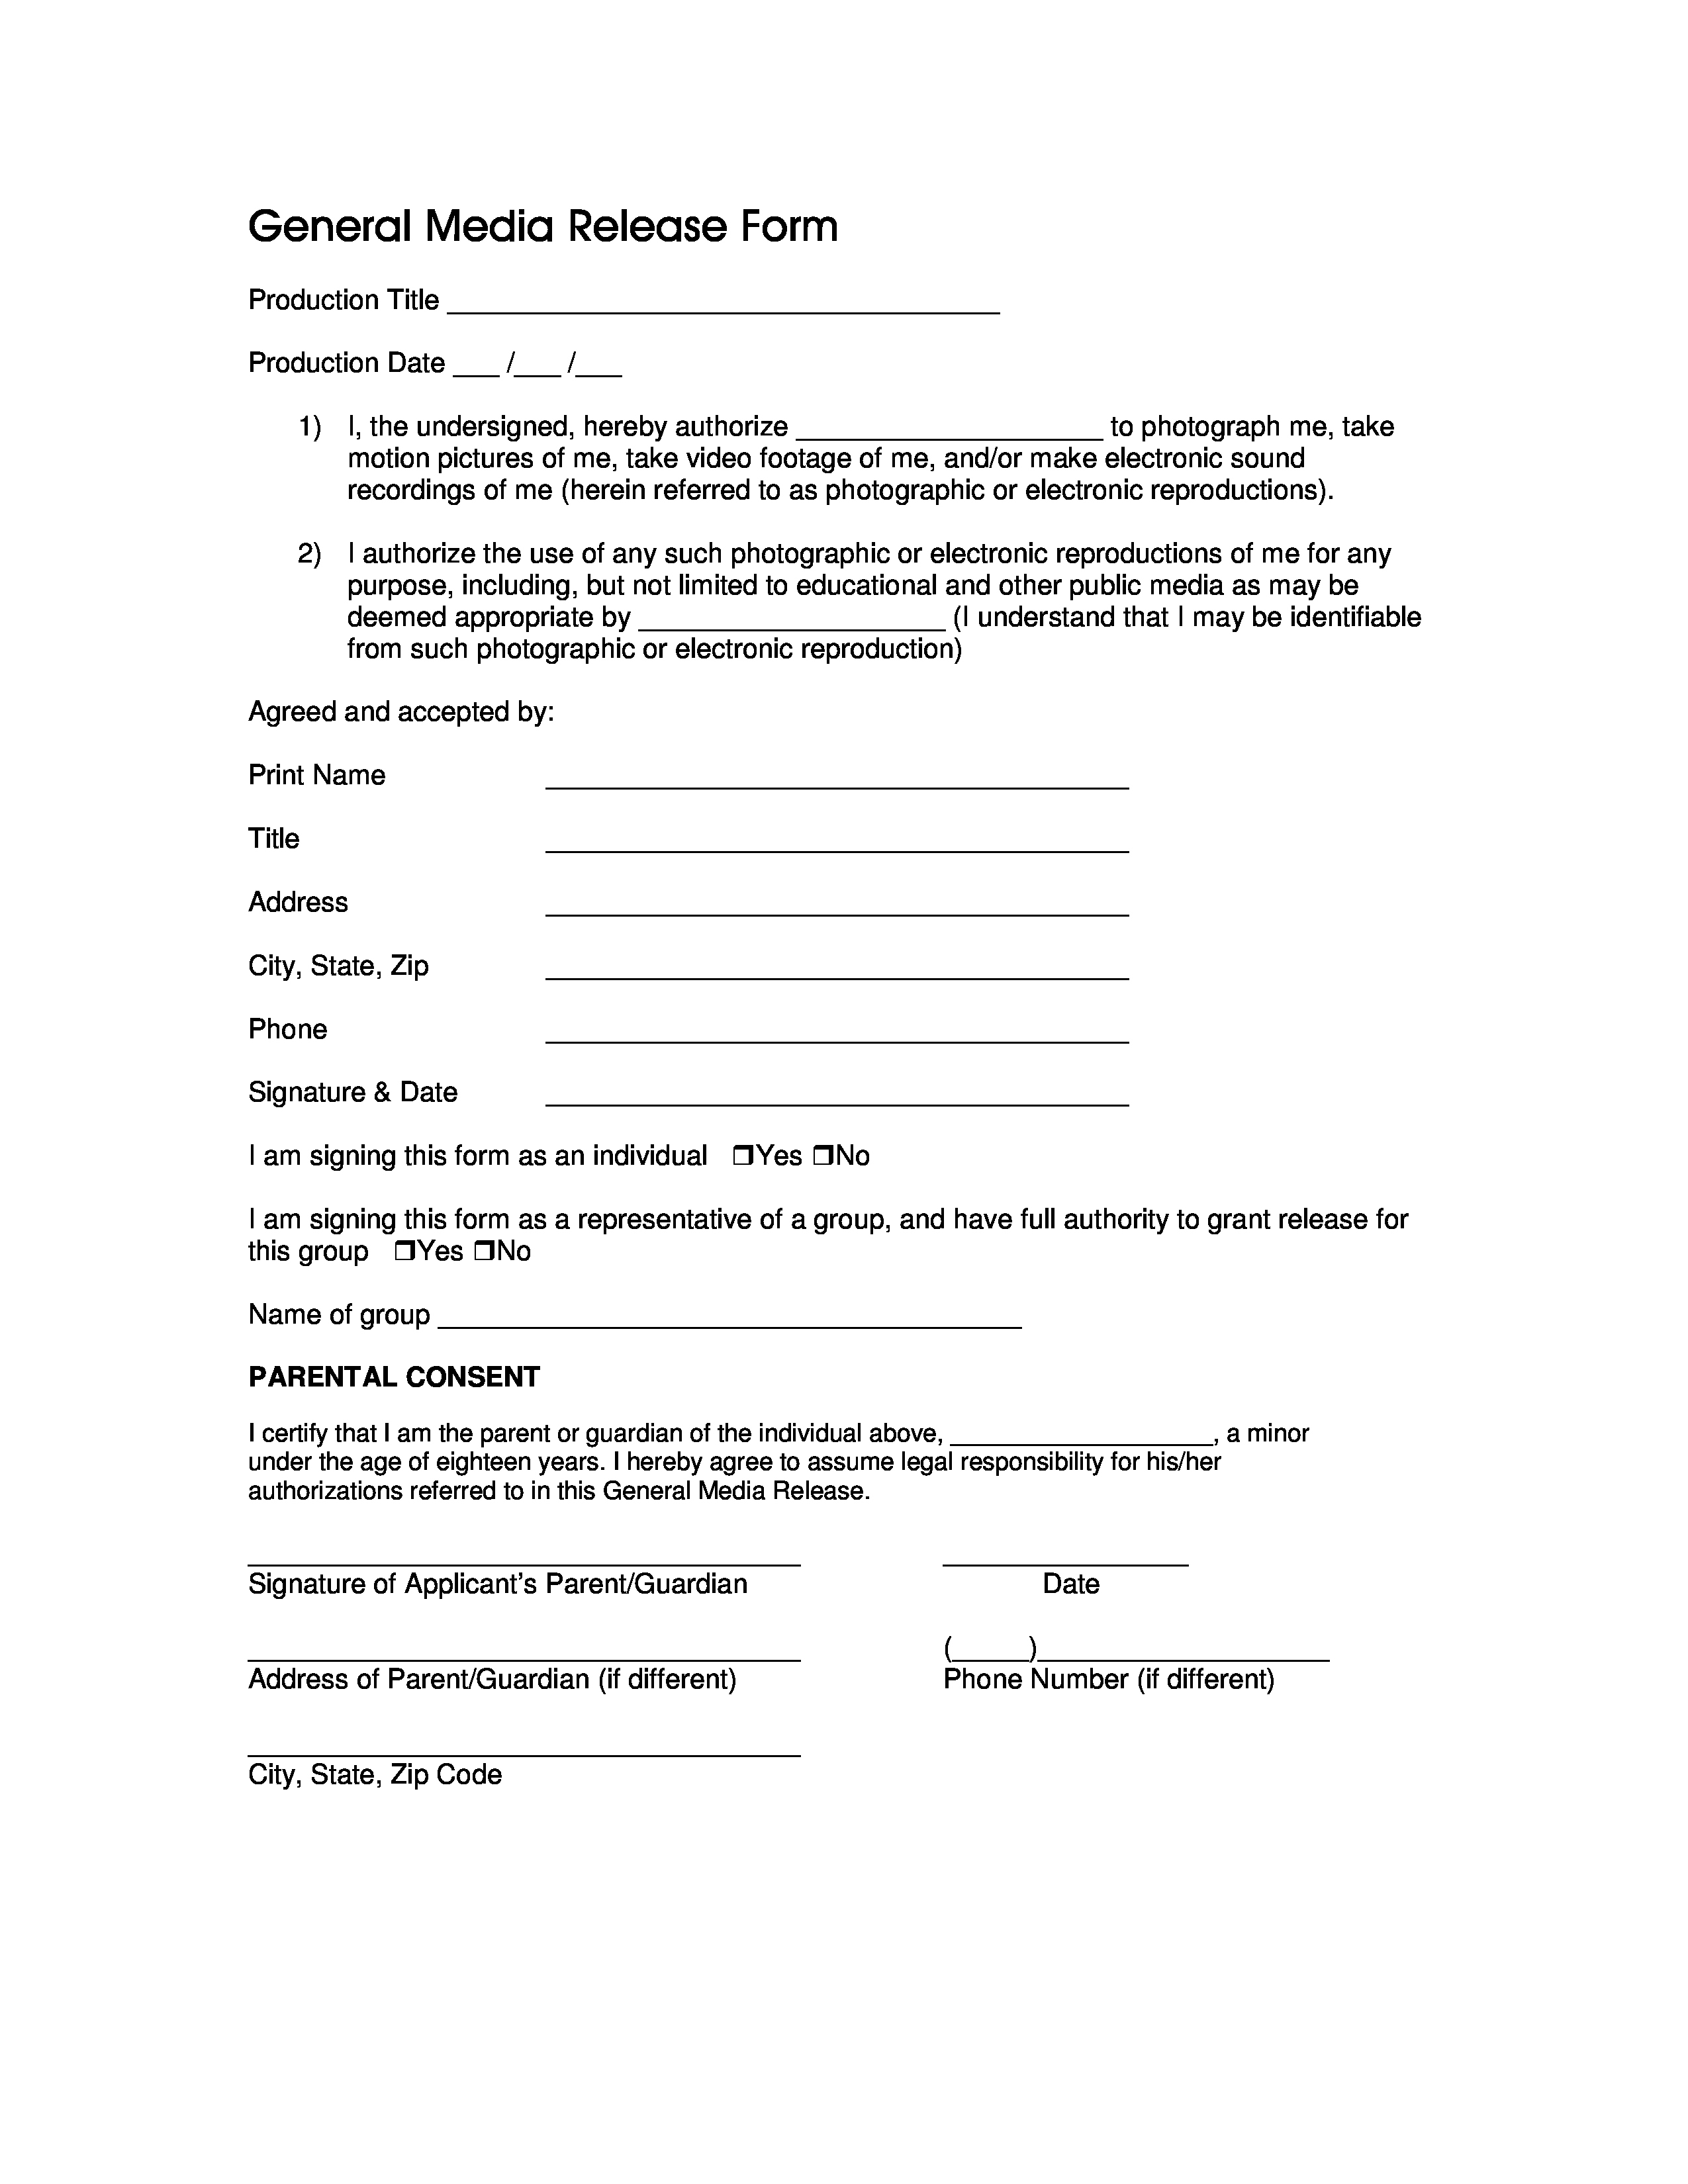 General Media Release form Beautiful Release forms Template Search Result 40 Cliparts for Release forms Template